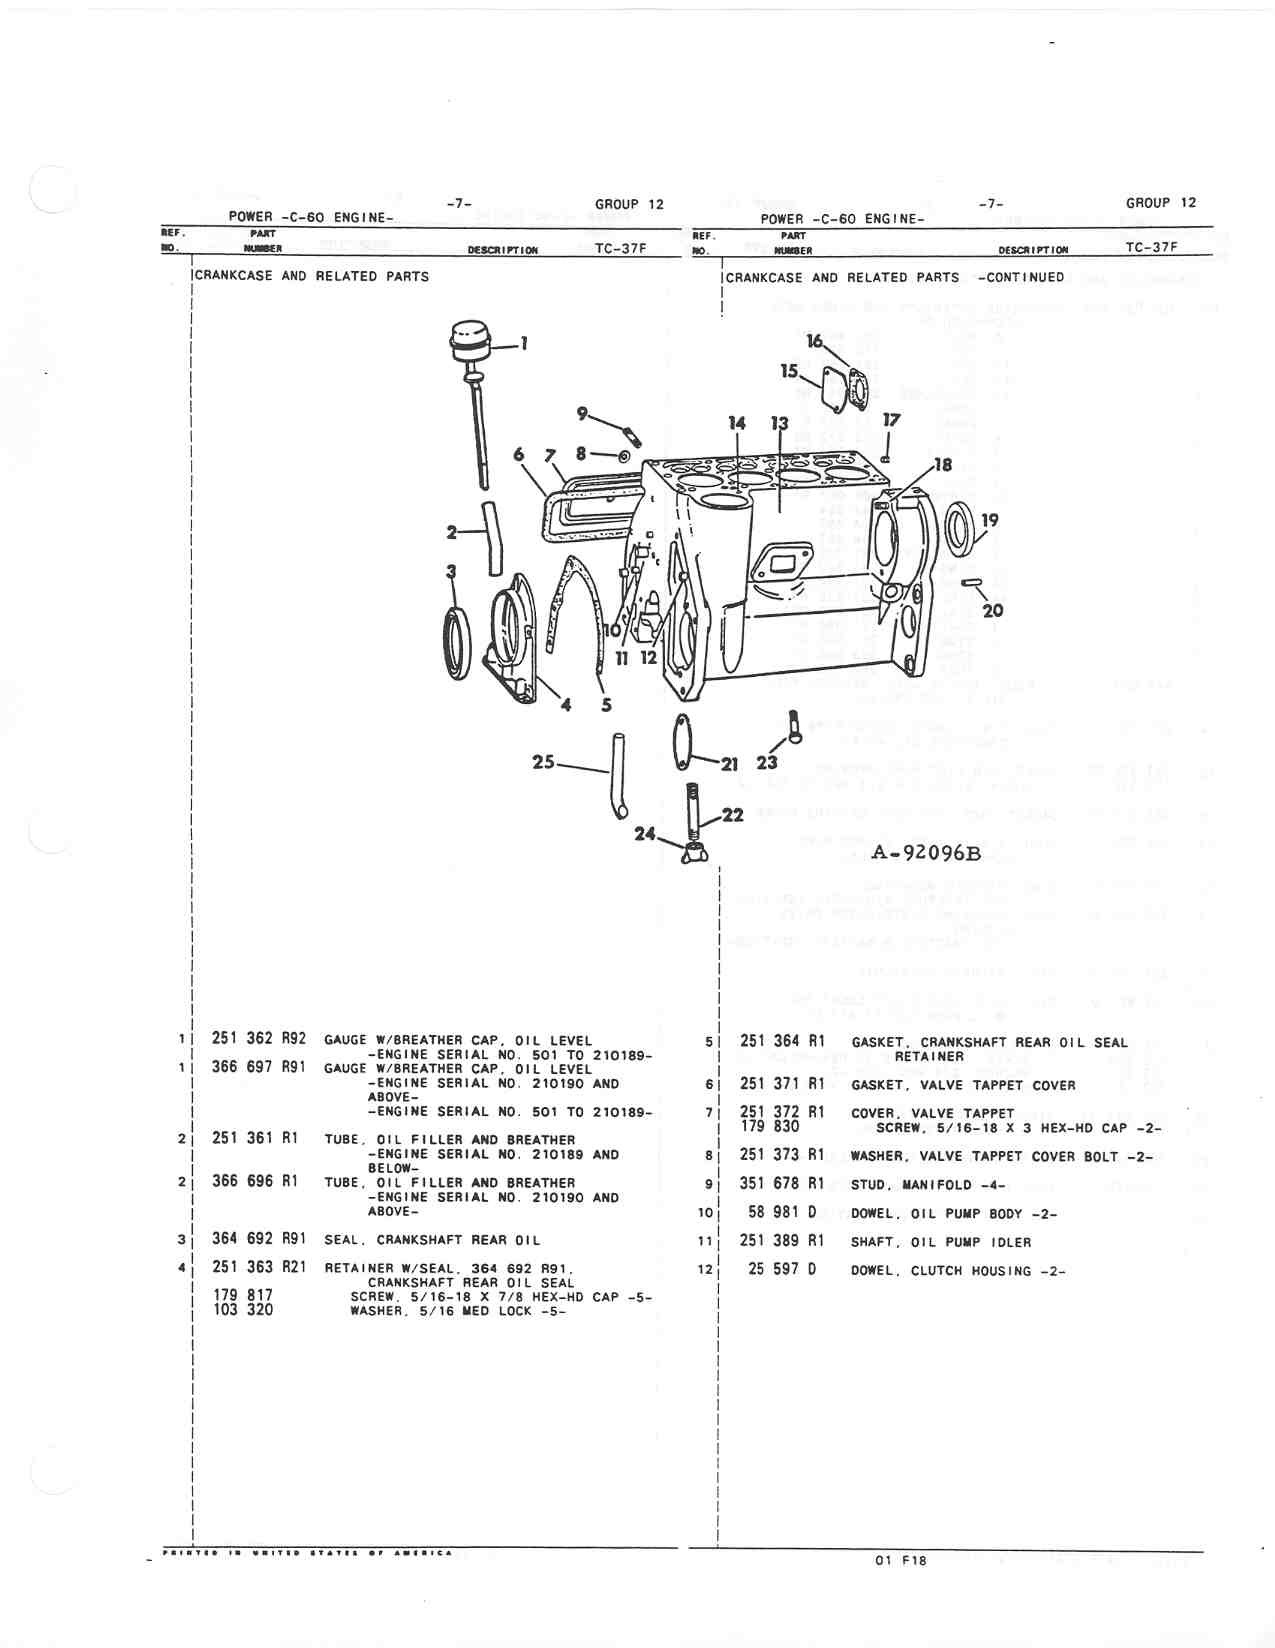 farmall m parts diagram wiring diagrams list Farmall Cub Oil Diagram farmall cub oil diagram all diagram